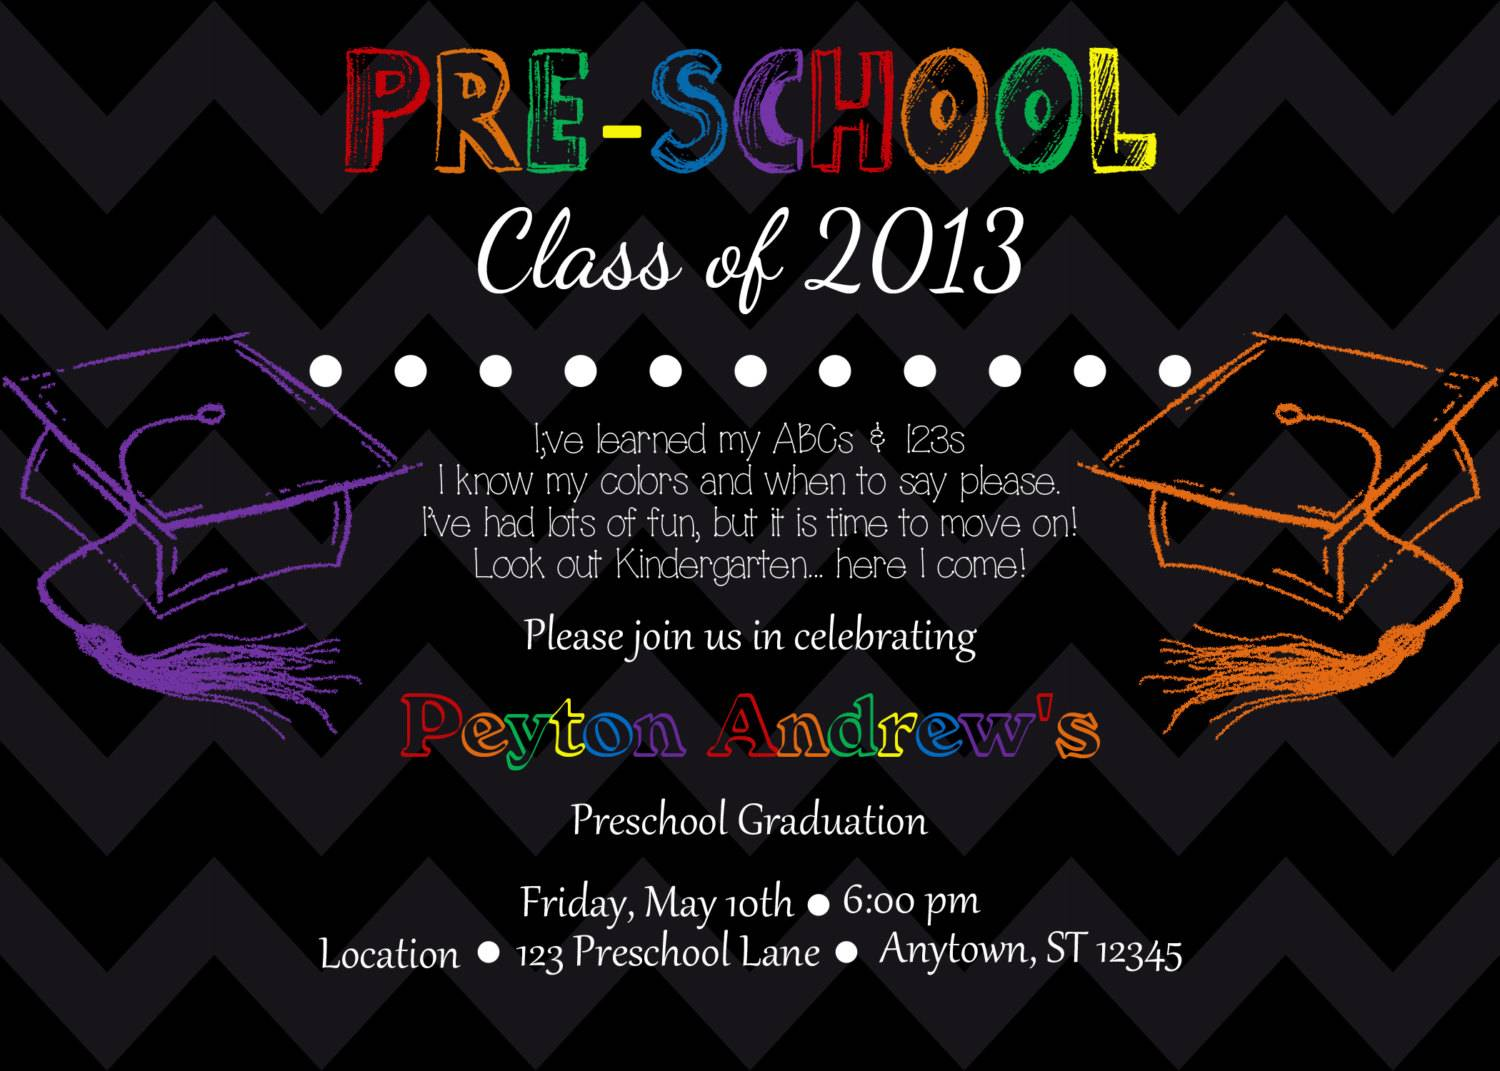 Preschool Graduation Invitation Template Free